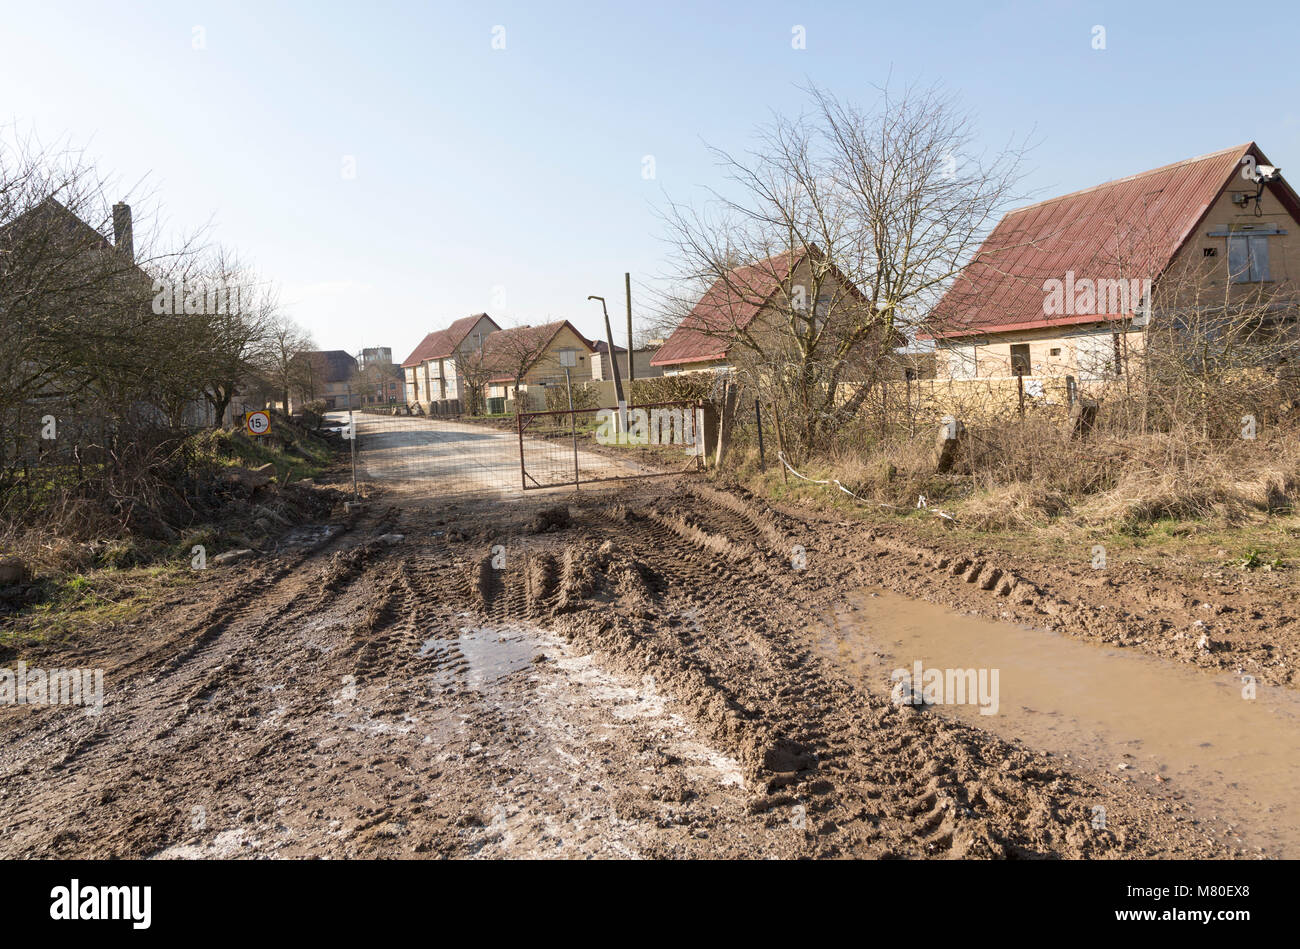 Copehill Down FIBUA village military training area, Fighting In Built Up Areas, Chitterne, Salisbury Plain, Wiltshire, - Stock Image